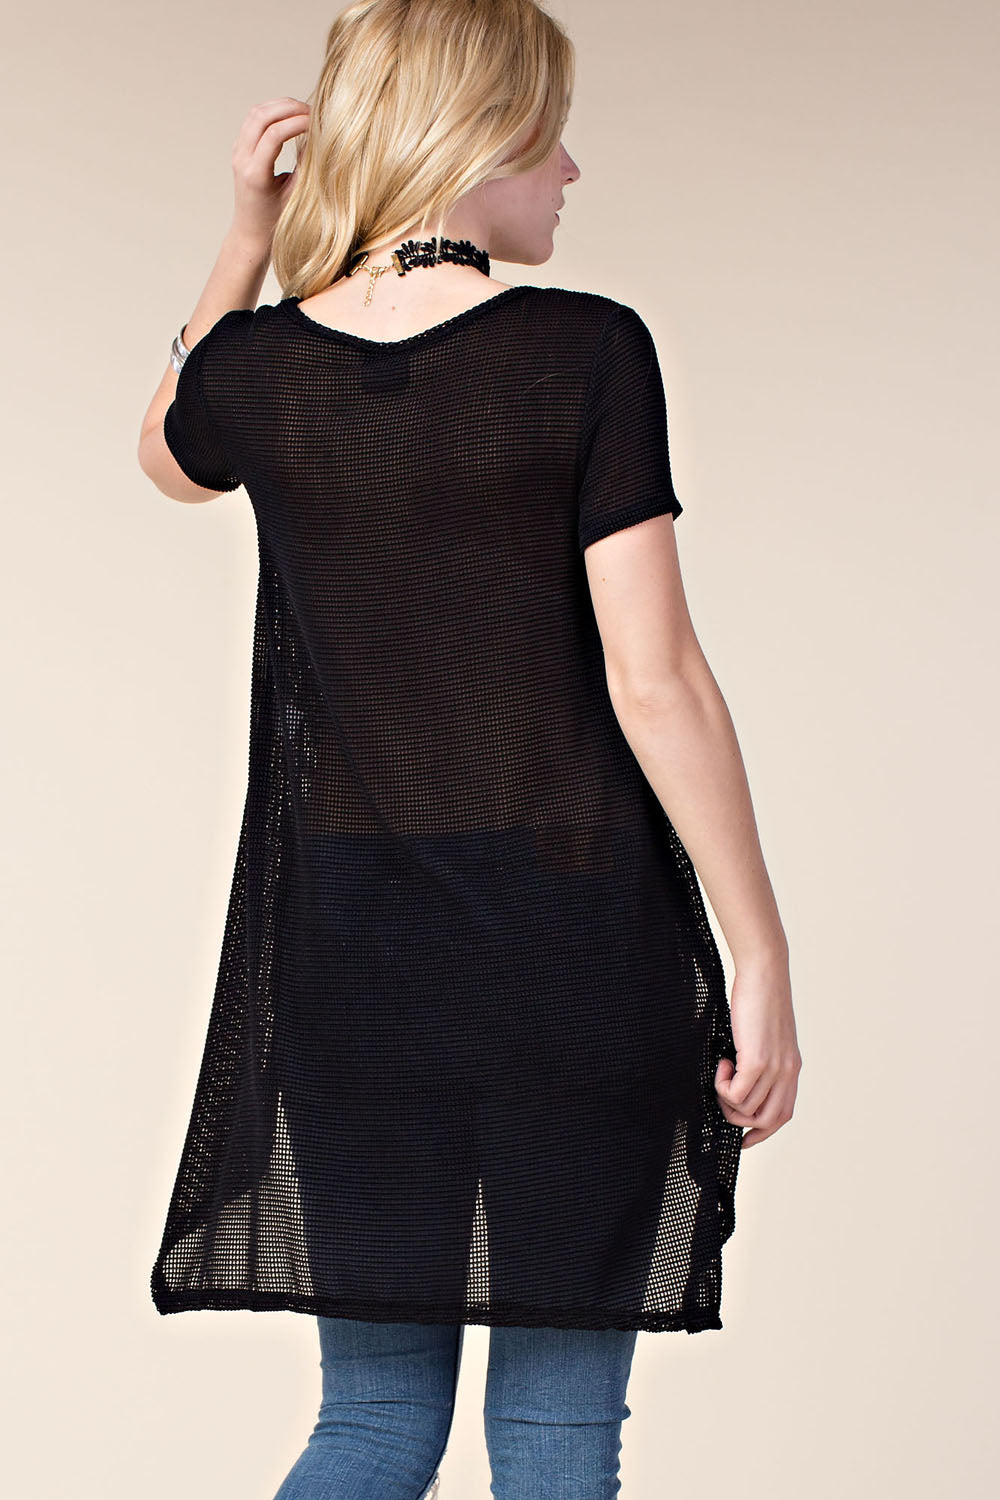 Back view young woman wearing black short sleeved high low tunic top with scattered studs